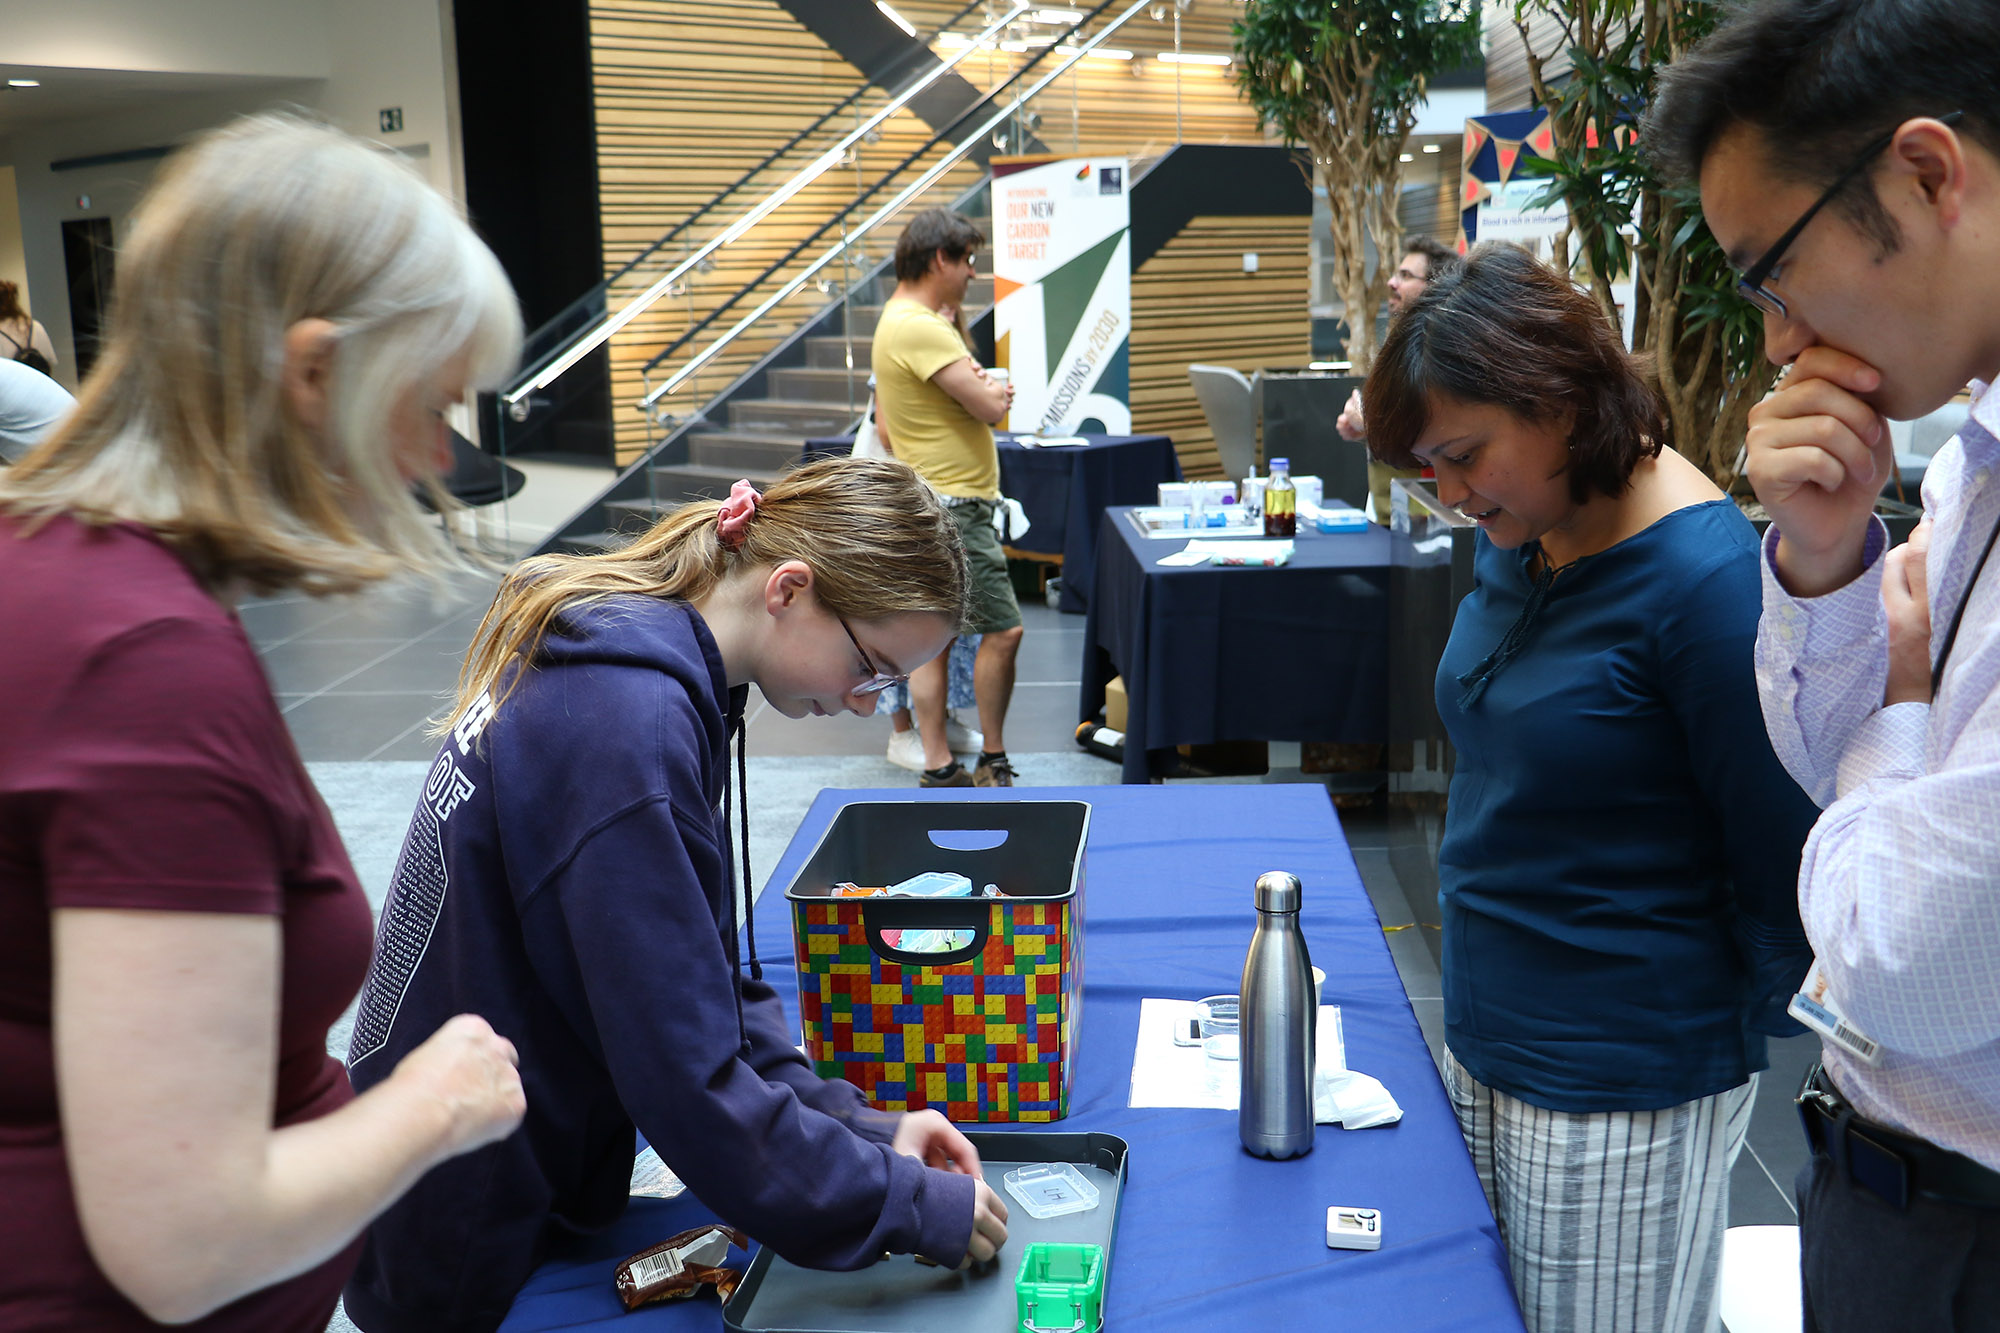 Young girl doing an activity at the 2019 Open Doors event while her mother and 2 researchers watch her.